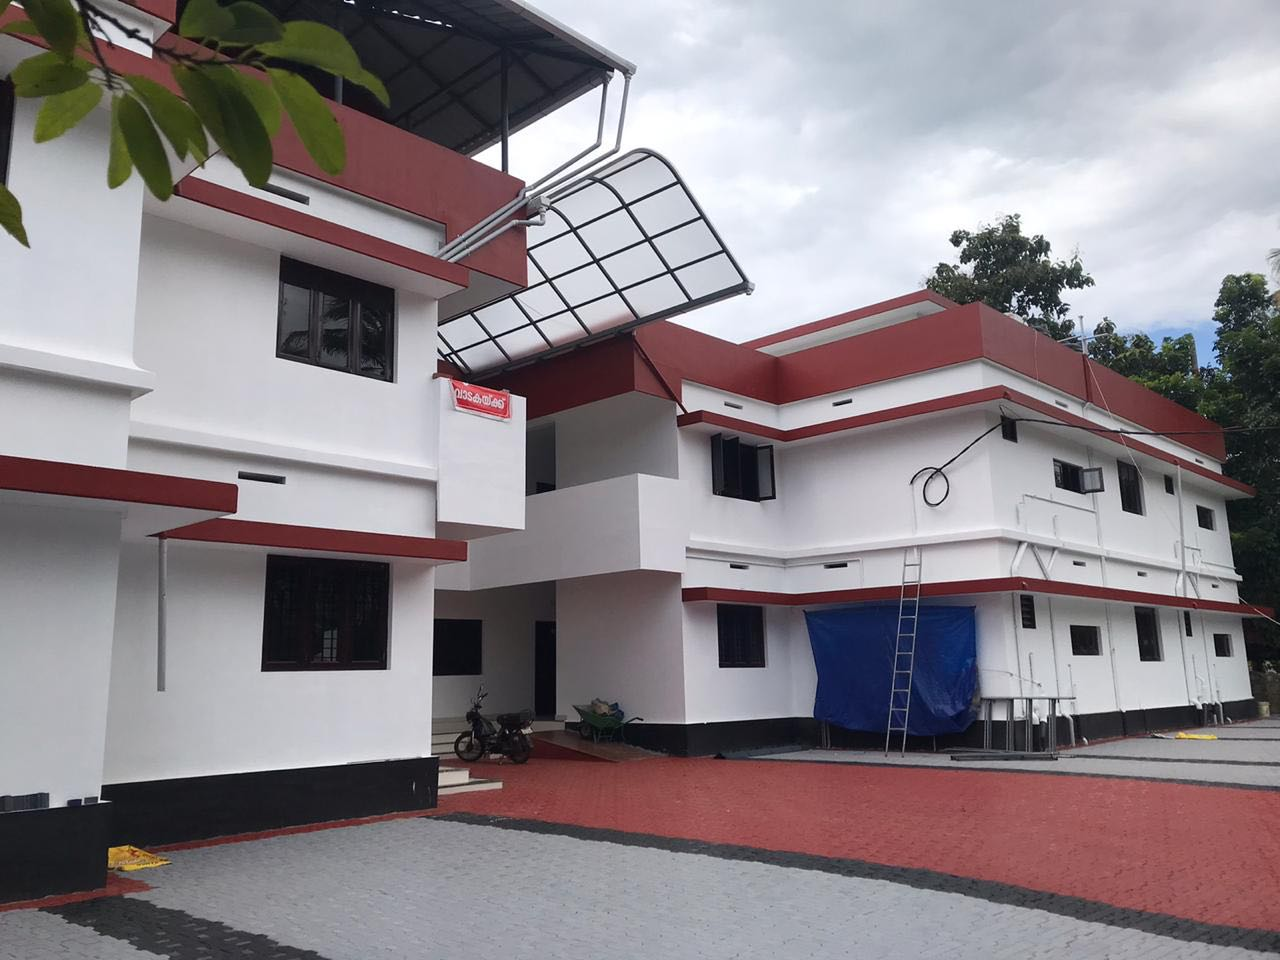 NEW LUXURY FLAT FOR RENT (2BHK & 1BHK) AVAILABLE IN KAIPAMANGALAM, THRISSUR